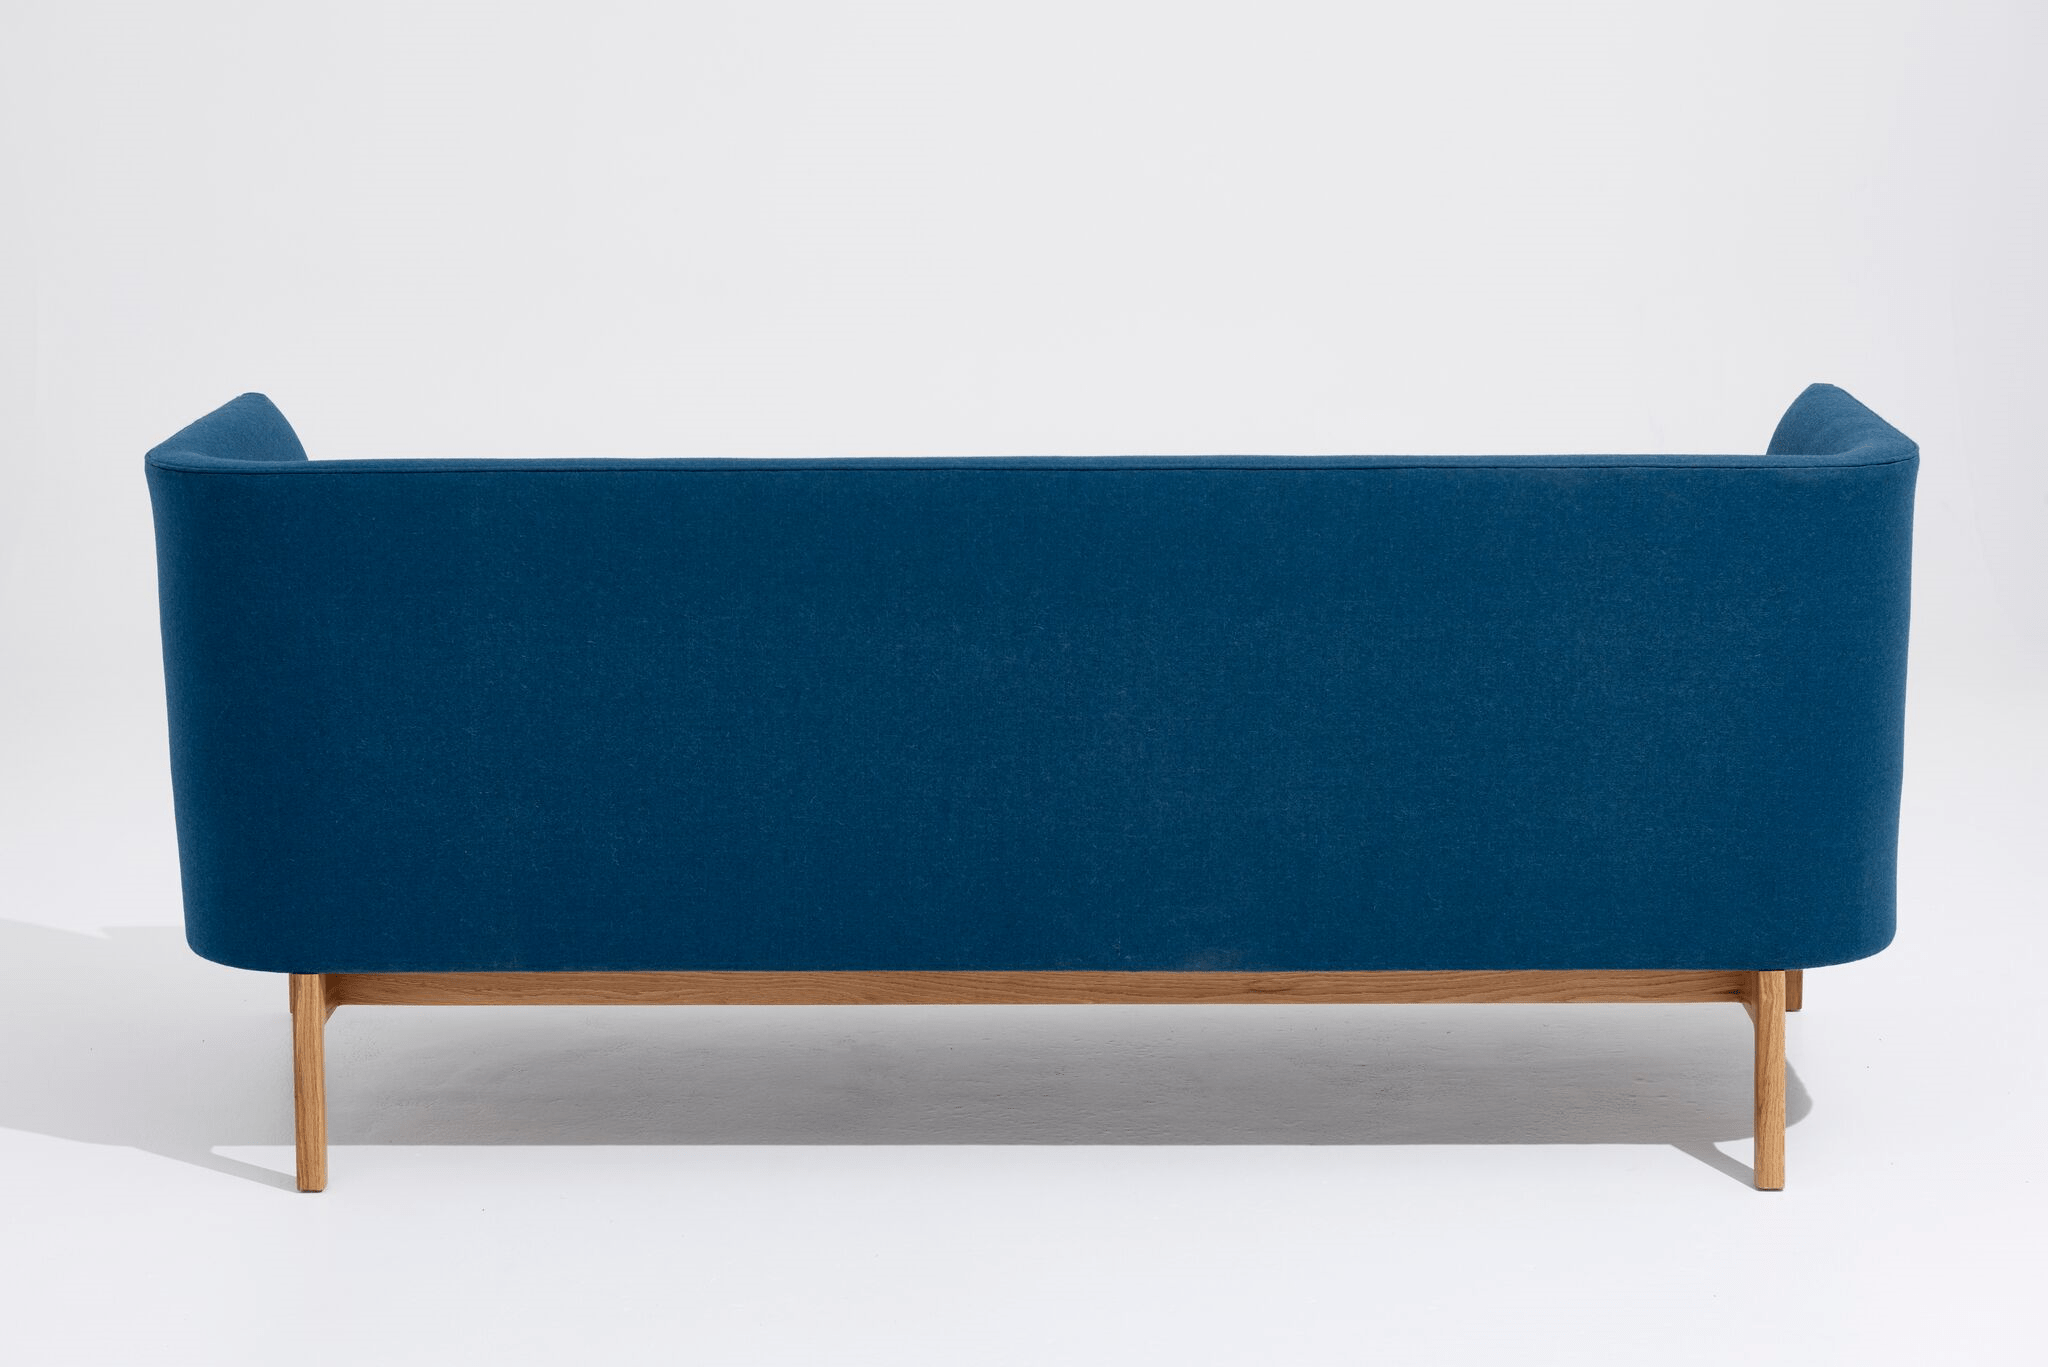 an American Oak base, upholstered hardwood frame and a high resilience foam seat.